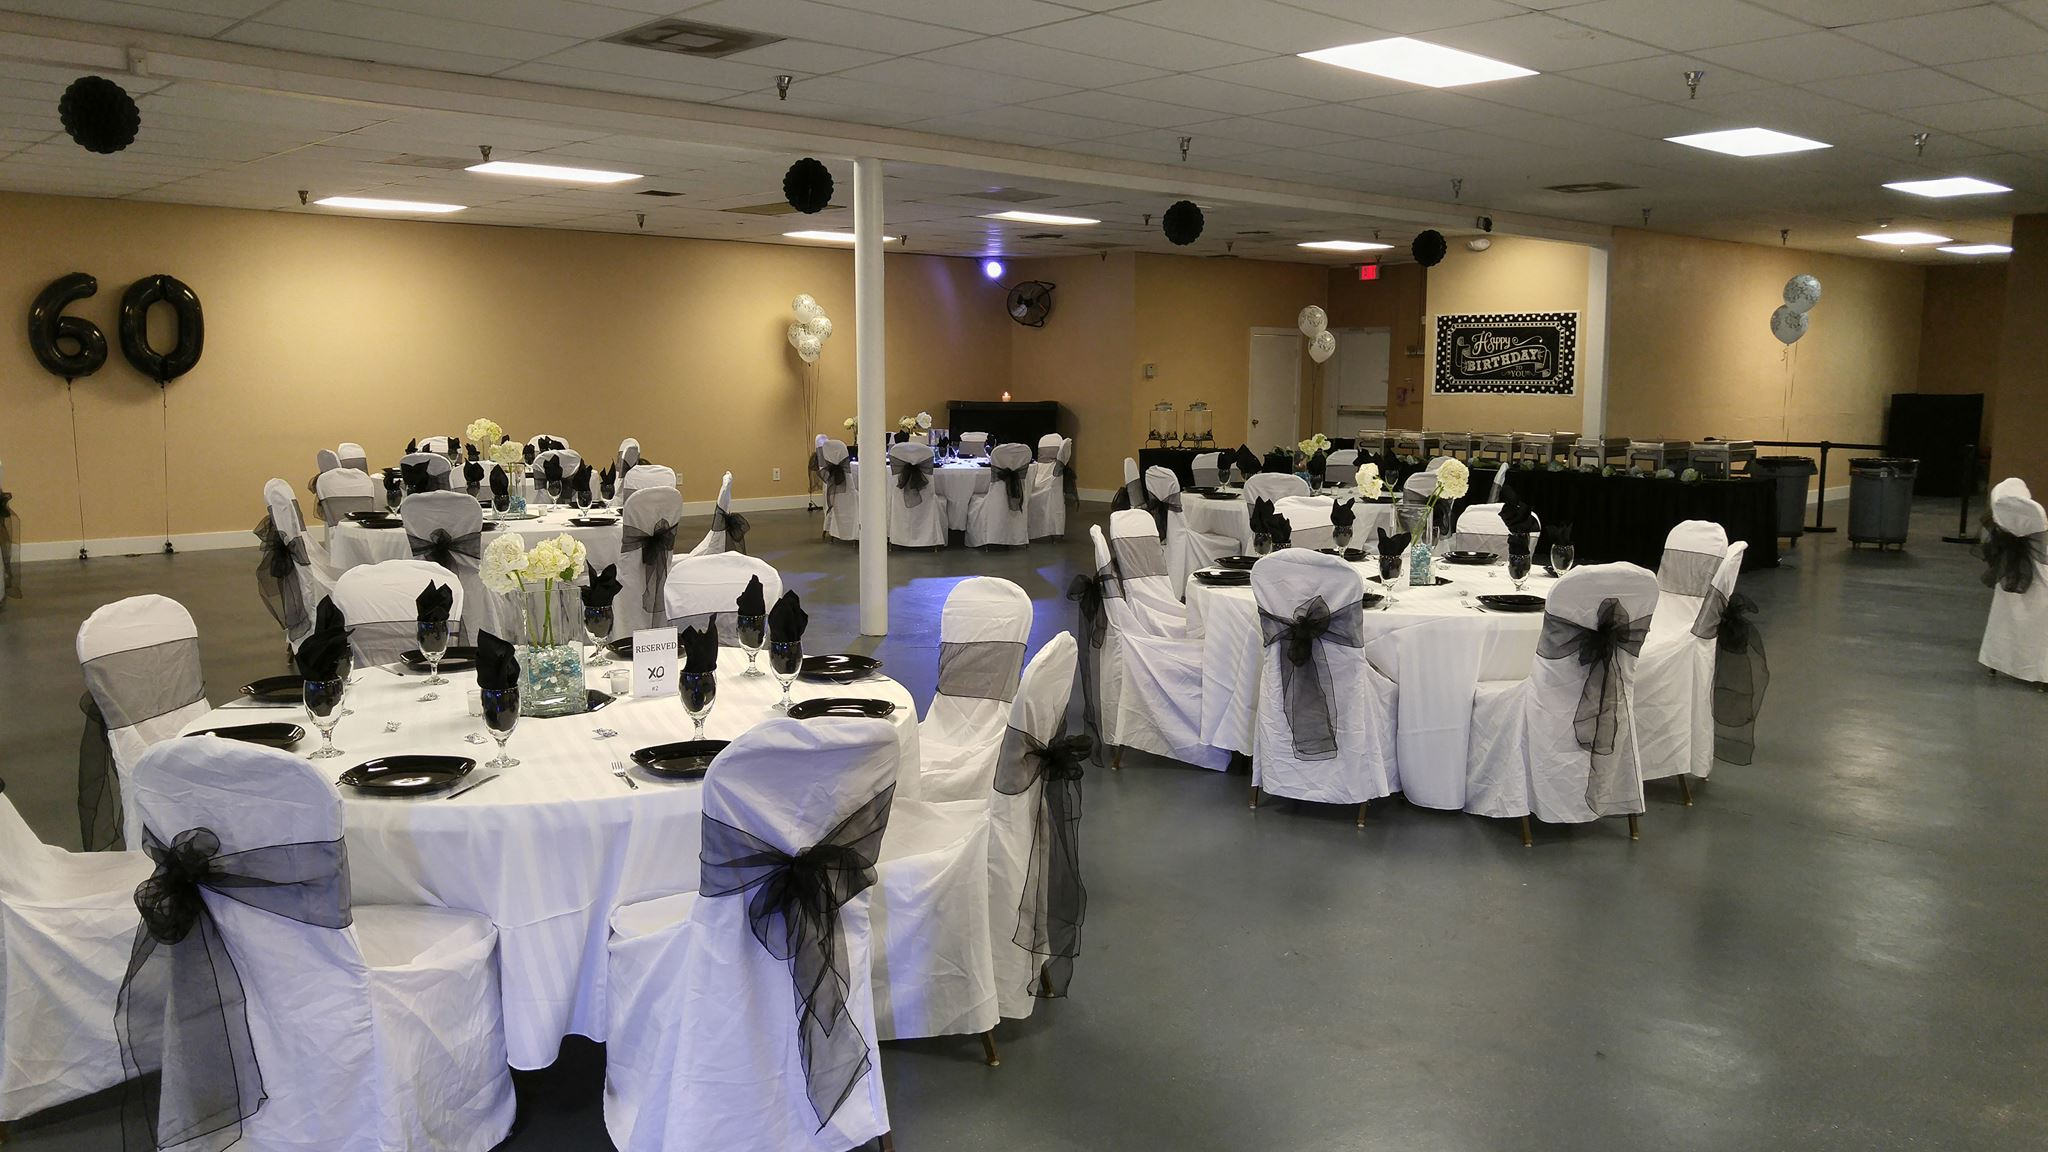 Share My Space At Event Services Florida With Condition: Ballroom, Sanford, Baby  Shower